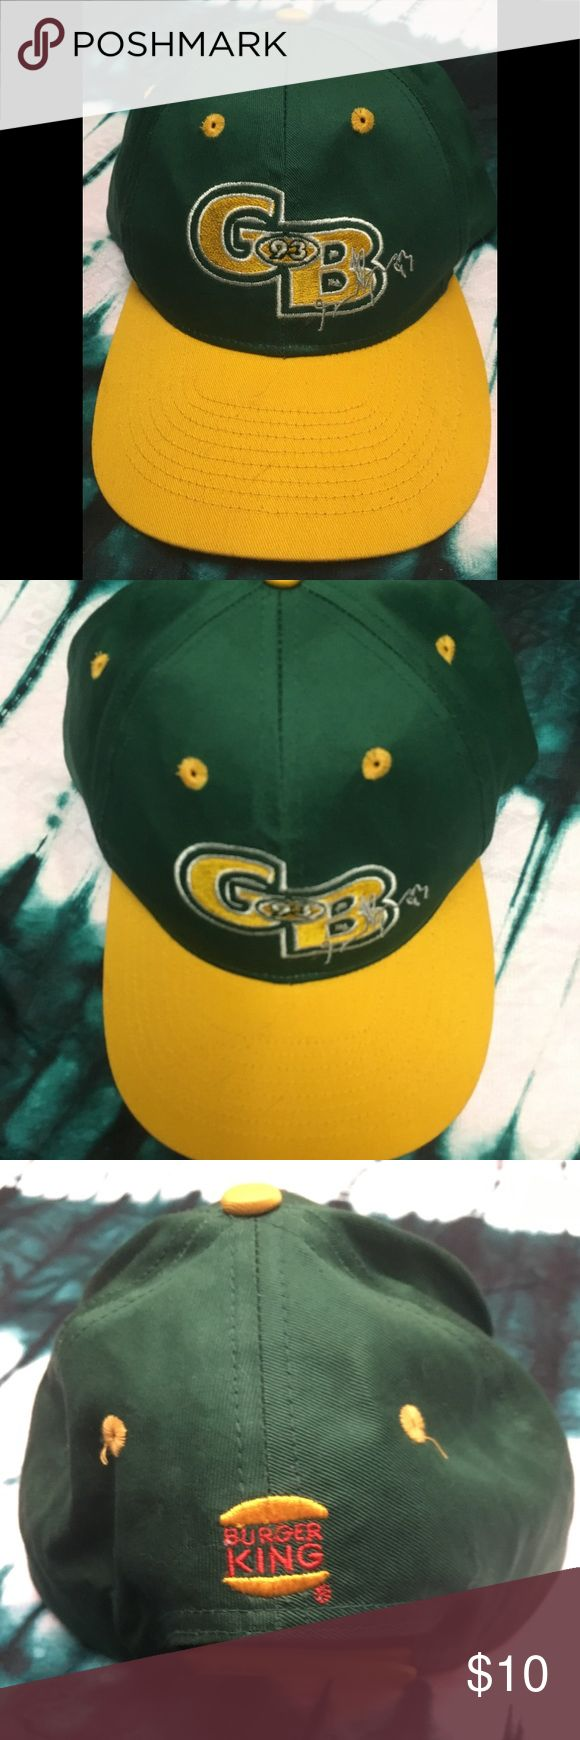 Vintage hat Green Bay Gilbert brown #93 snapback Vintage Burger King promotional snapback hat featuring Gilbert brown number 93 of the NFL football team the Green Bay packers this is an amazing find and I'm sad to let it go. Accessories Hats